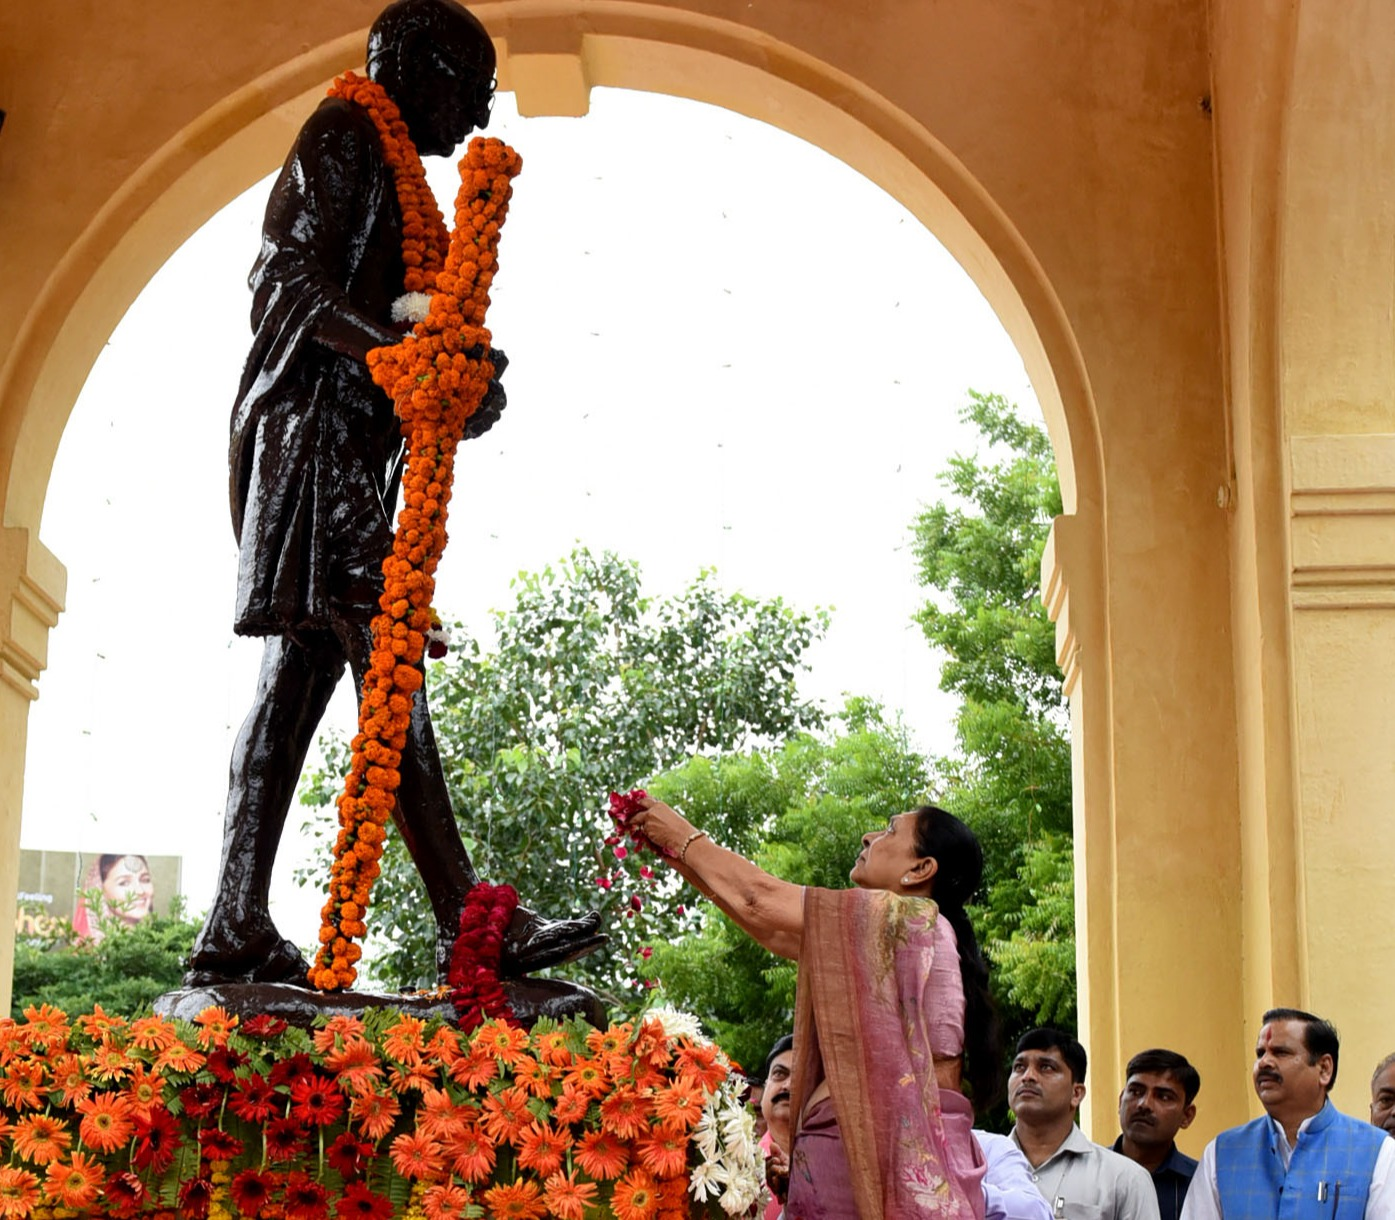 The Governor and the Chief Minister paid tribute to Gandhi Ji and Shastri Ji.